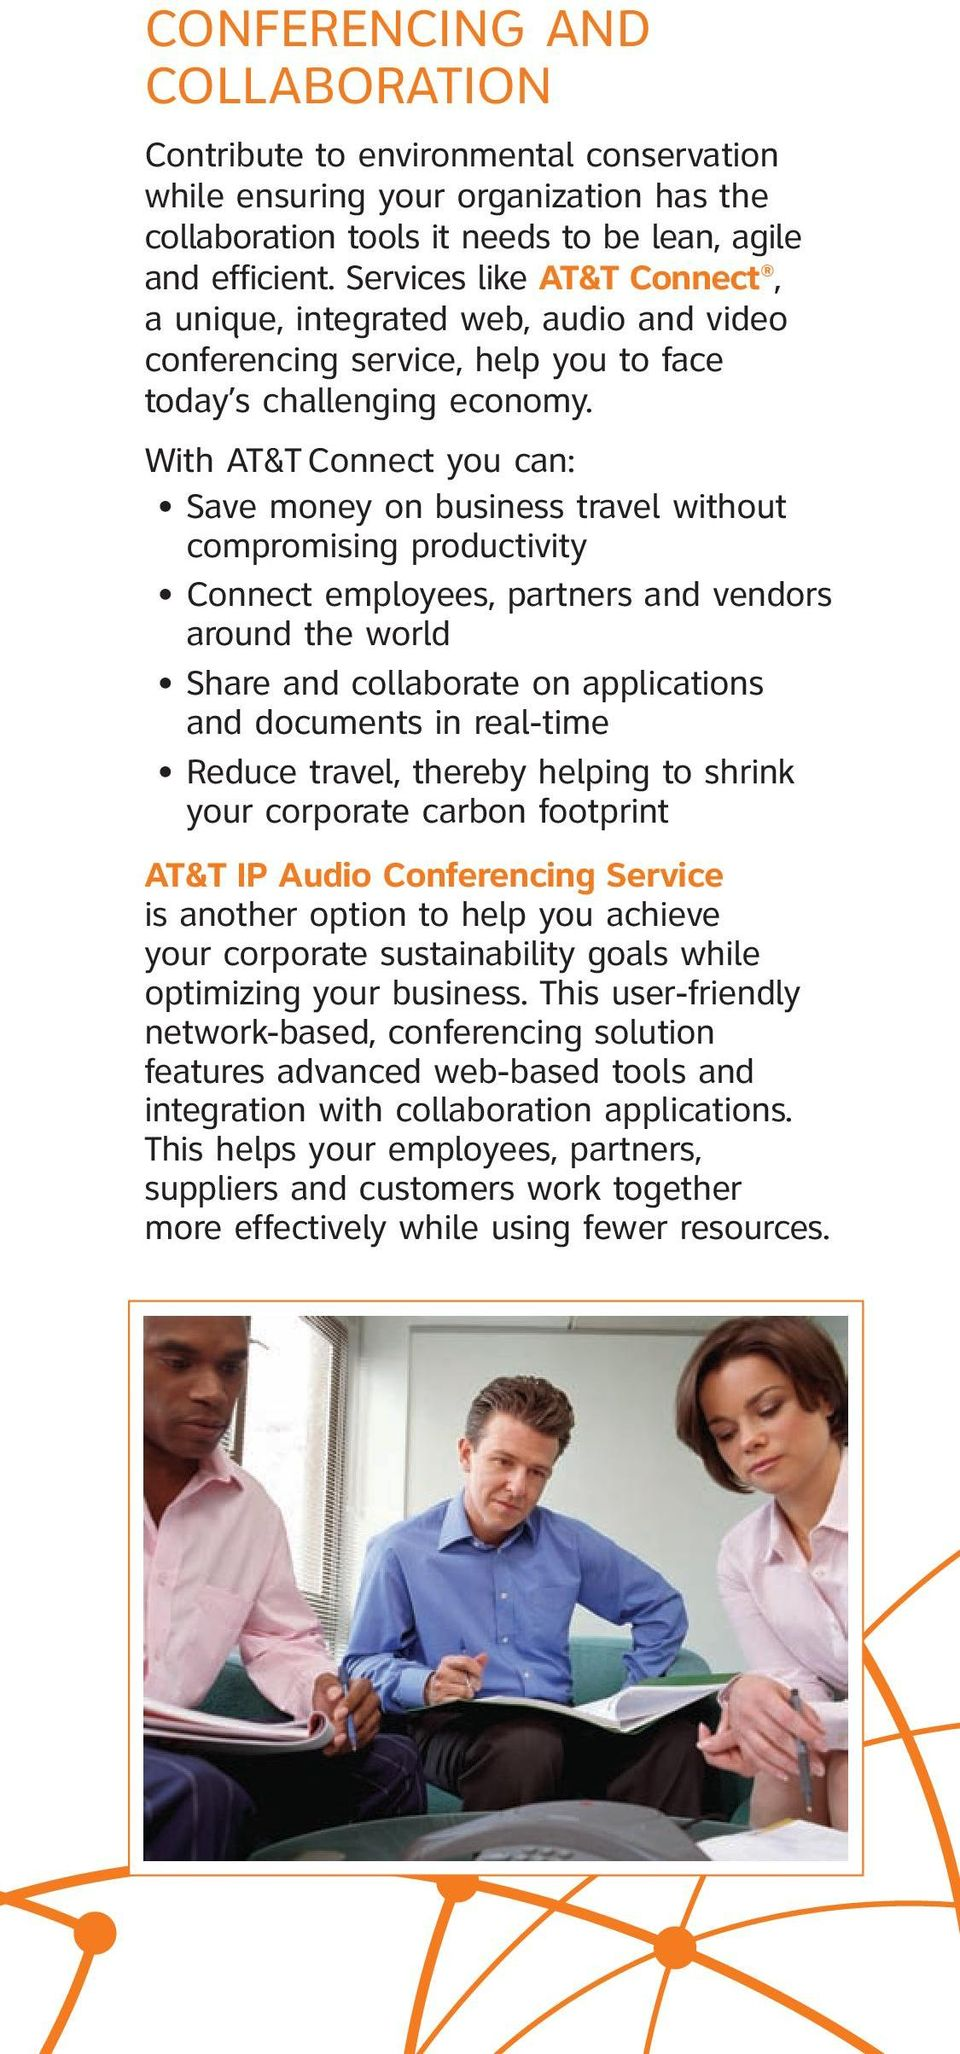 With AT&T Connect you can: Save money on business travel without compromising productivity Connect employees, partners and vendors around the world Share and collaborate on applications and documents